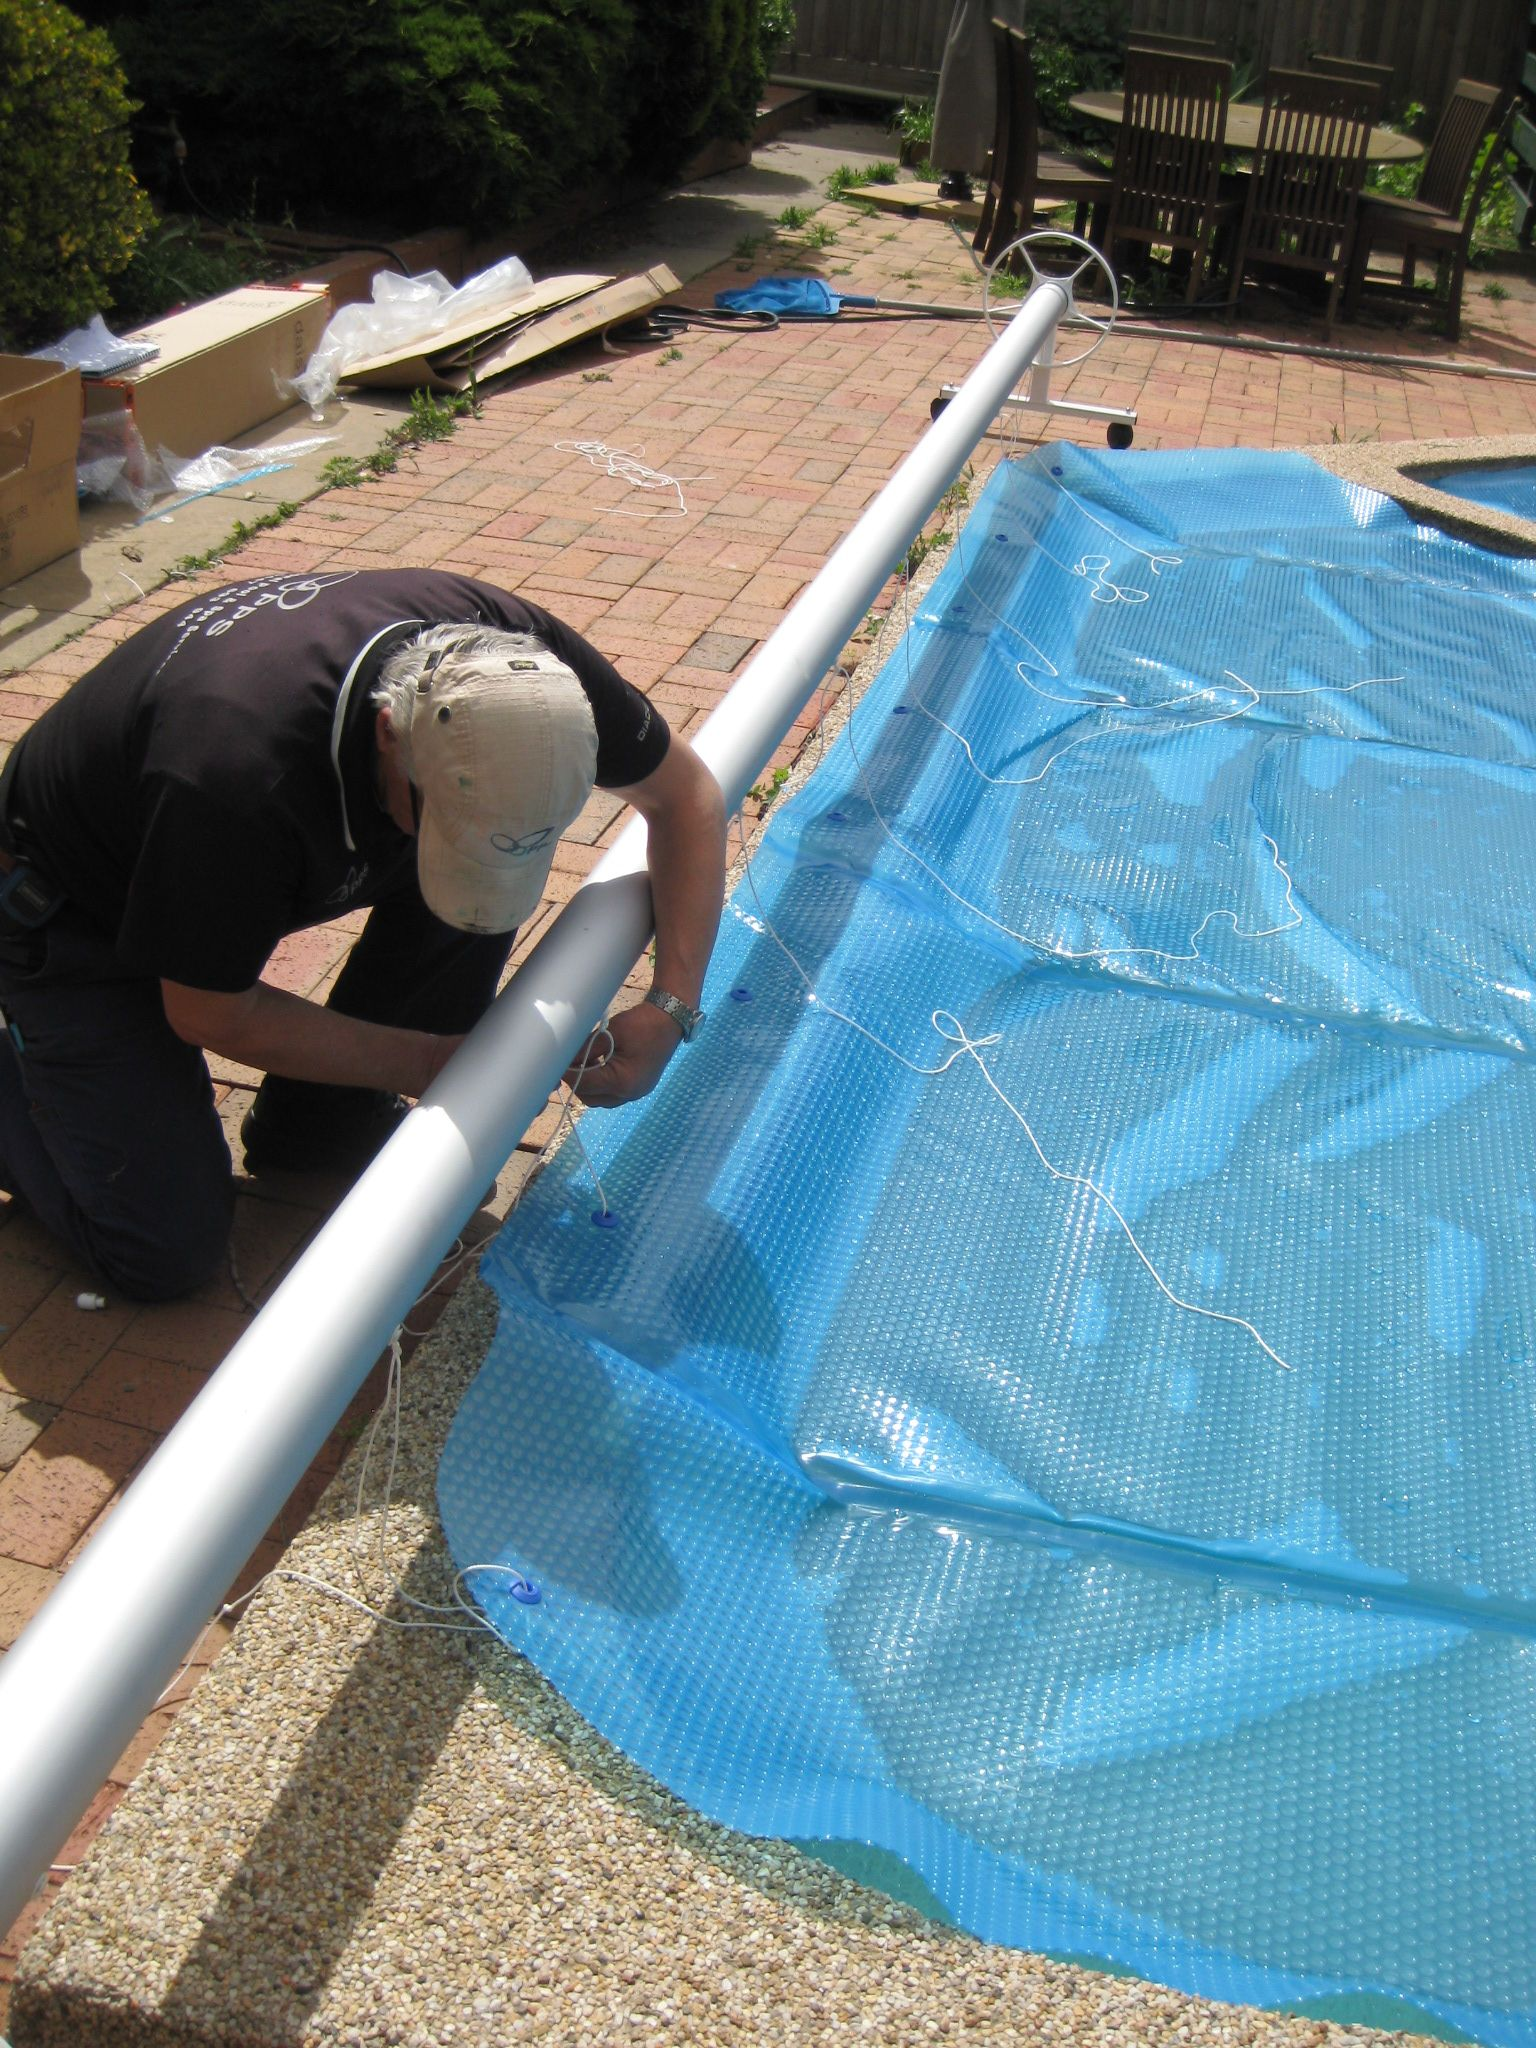 Attach Pool Cover To Reel Pool Cover Hidden Pool Solar Pool Cover